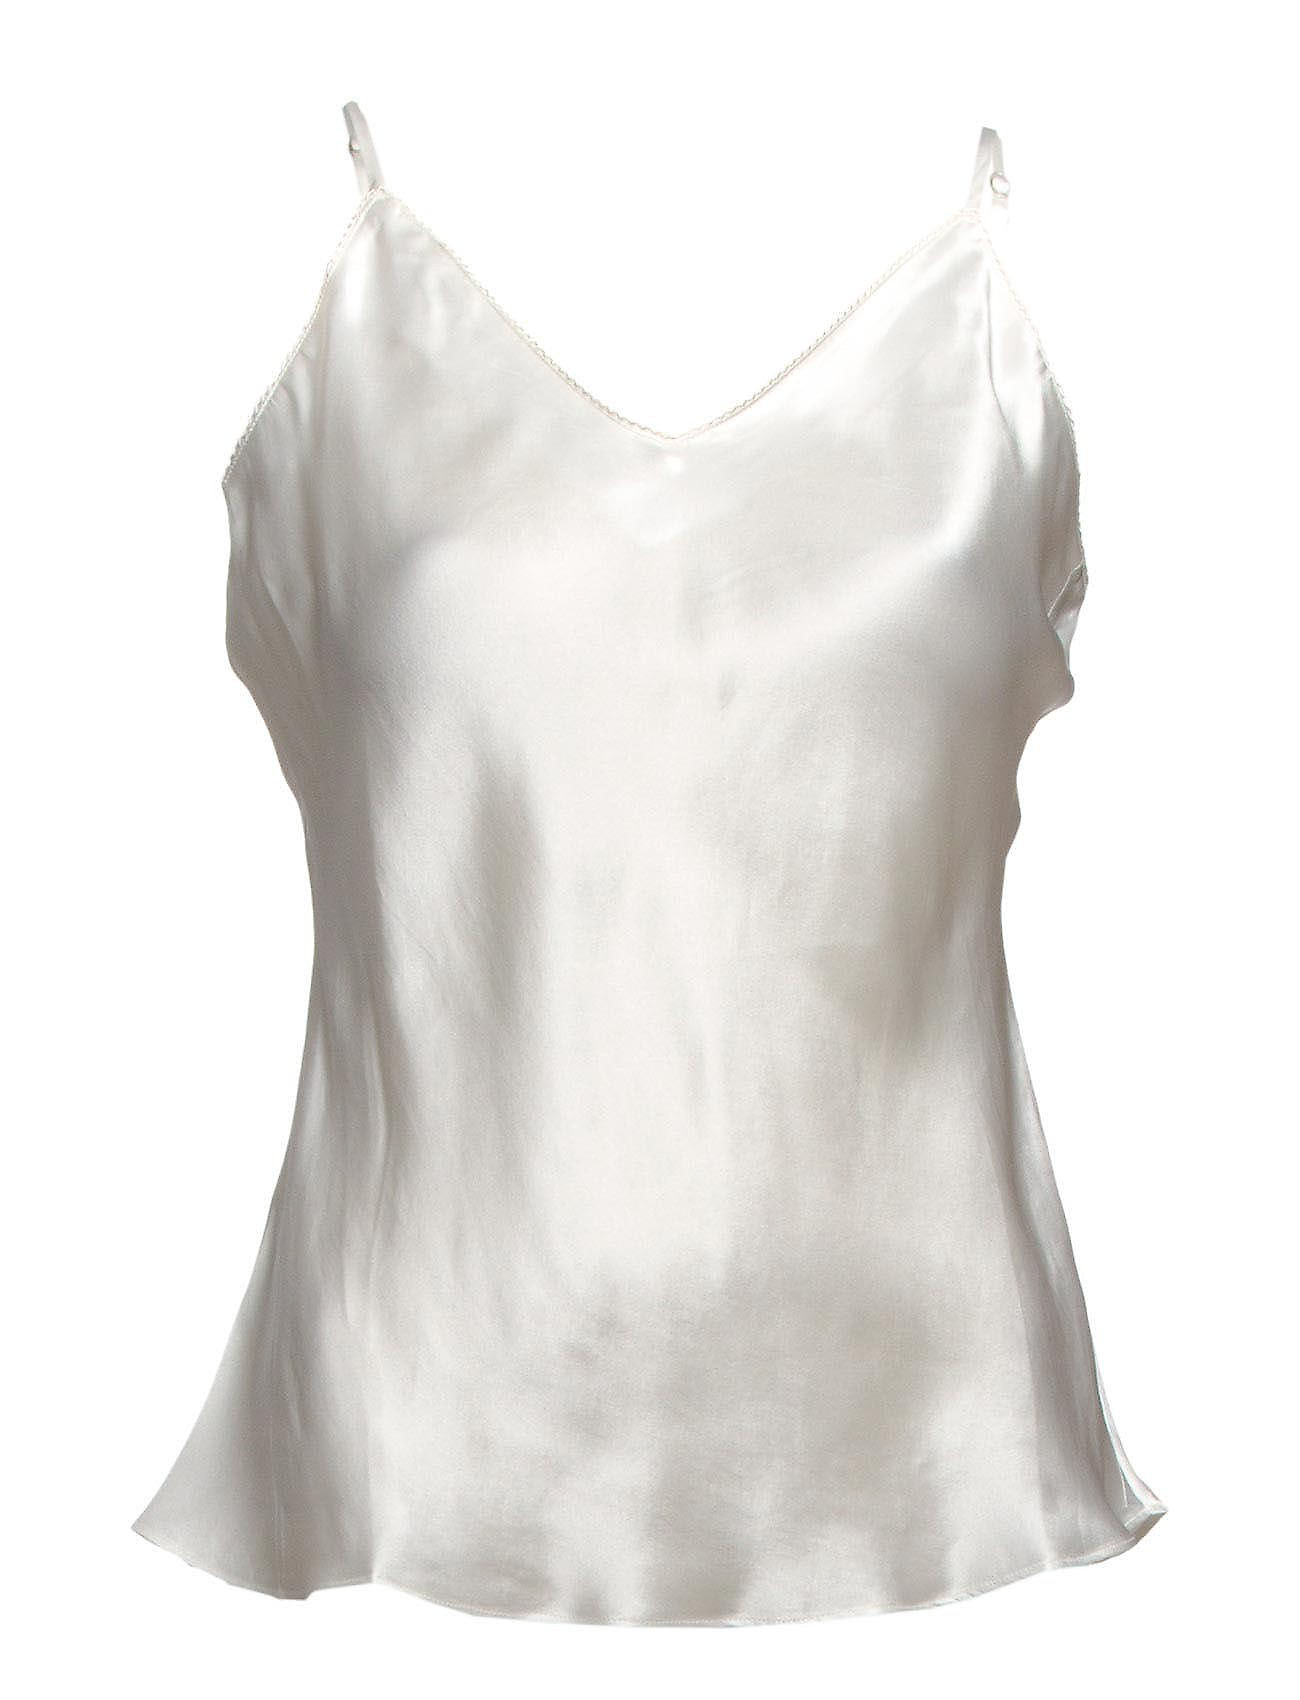 Image of Camisole Top Hvid Lady Avenue (3412634247)